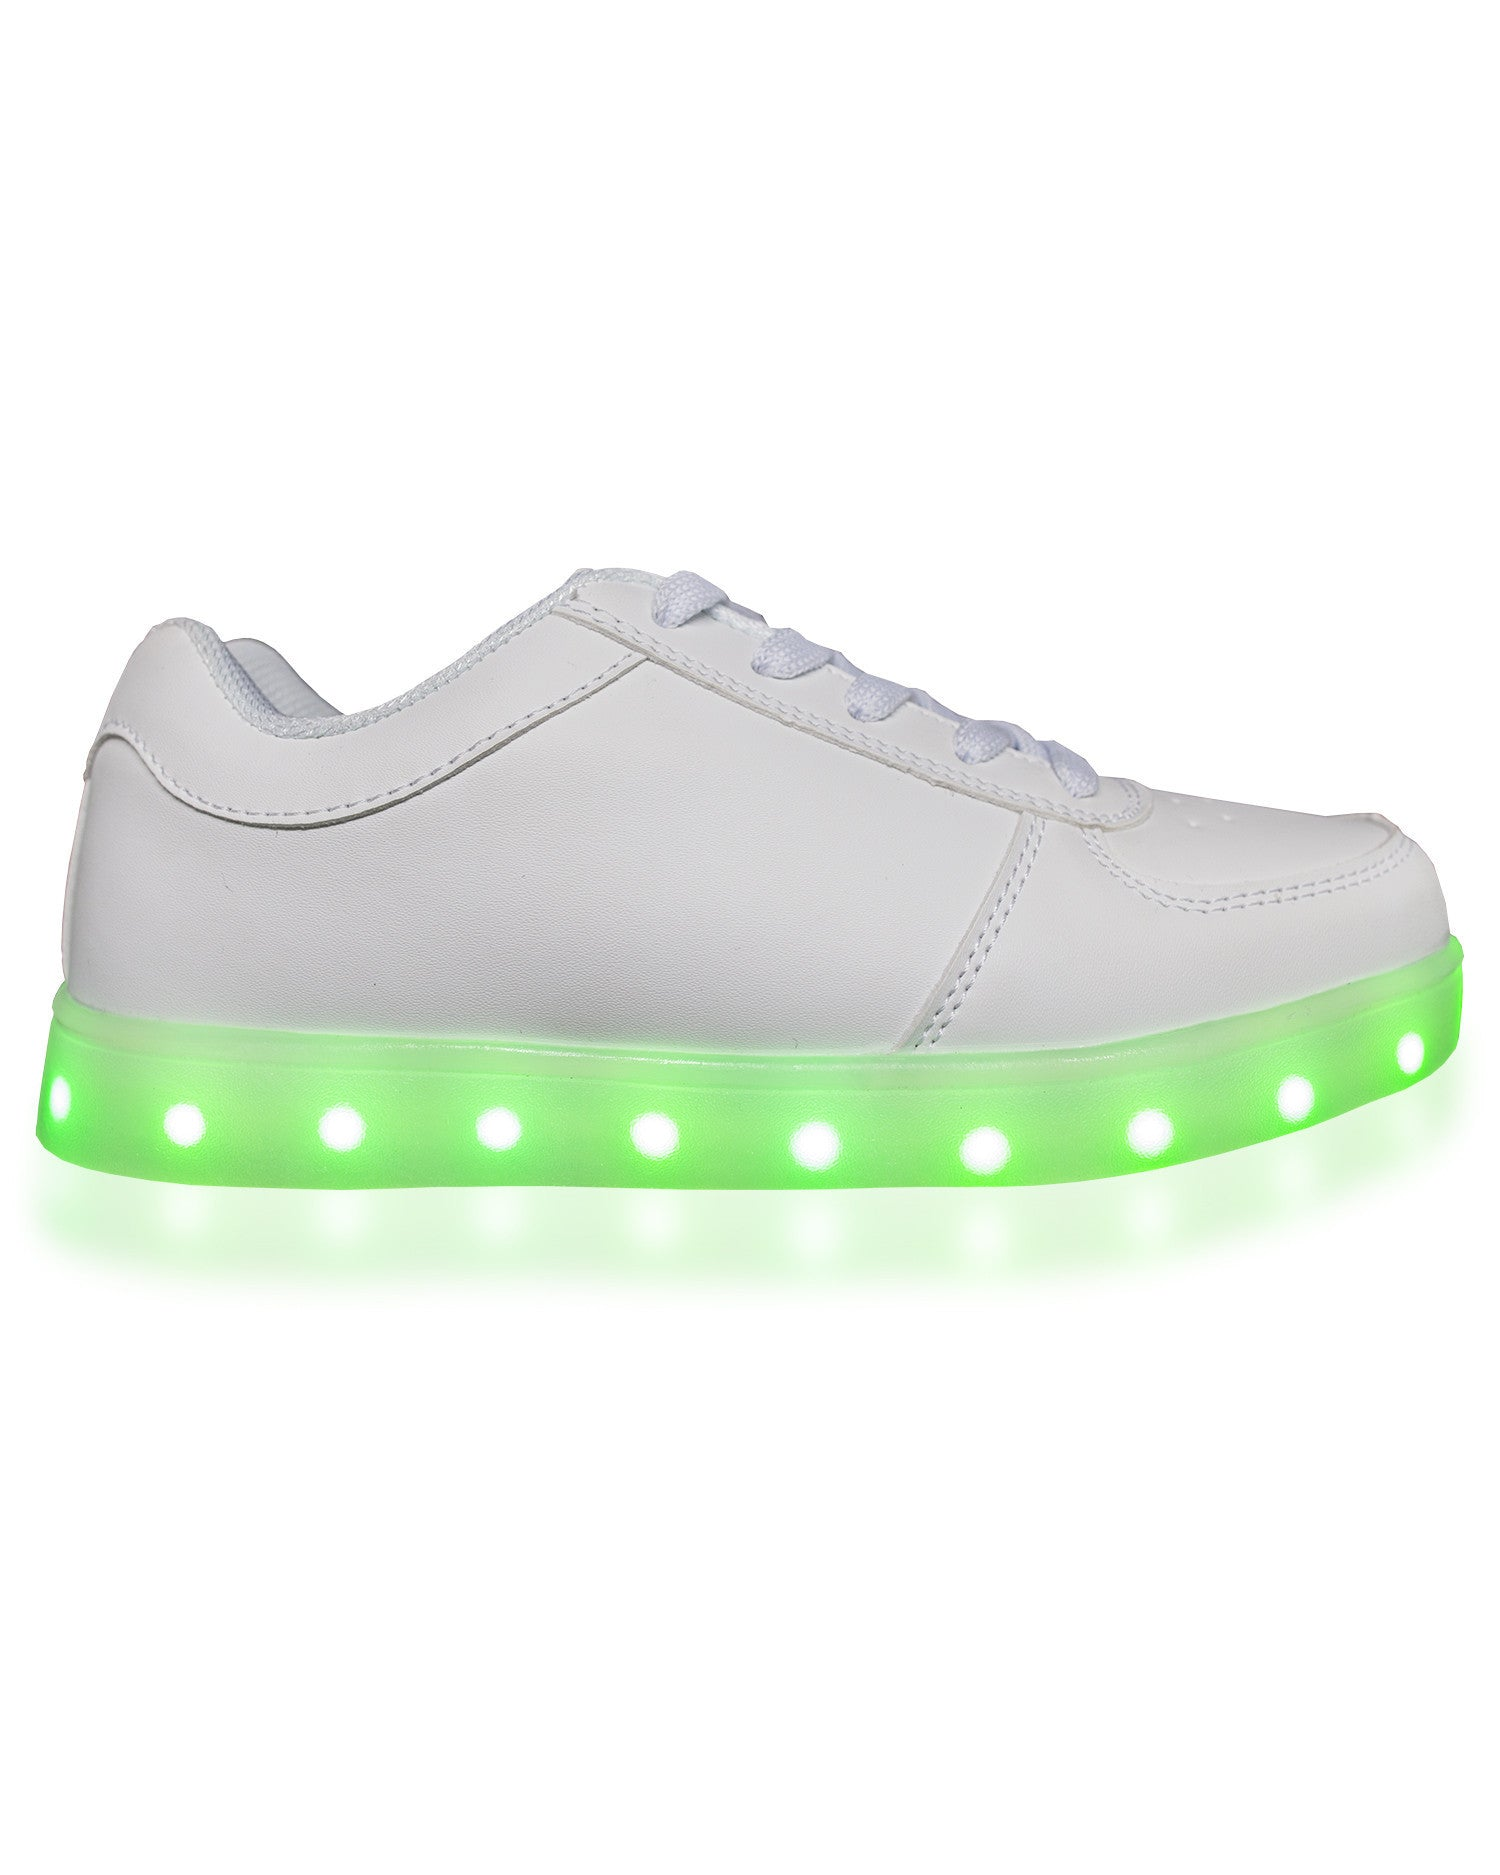 Light Up Shoes- Original - Electric Styles | World's Number 1 Light Up Shoe Store - {product_type}} - White / Men's 8 - 2